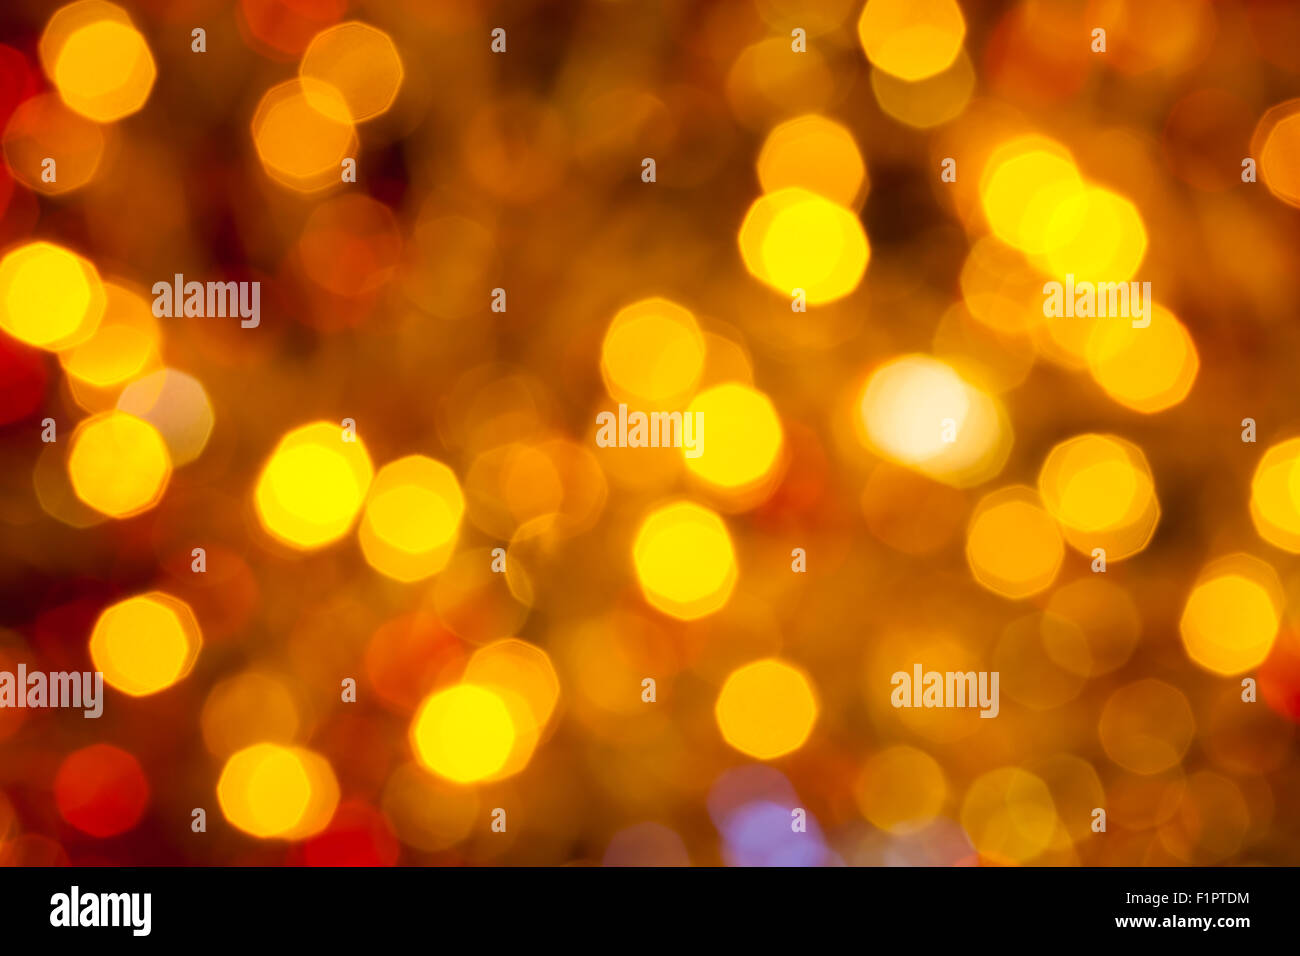 abstract blurred background - dark brown yellow and red shimmering Christmas lights bokeh of electric garlands on - Stock Image